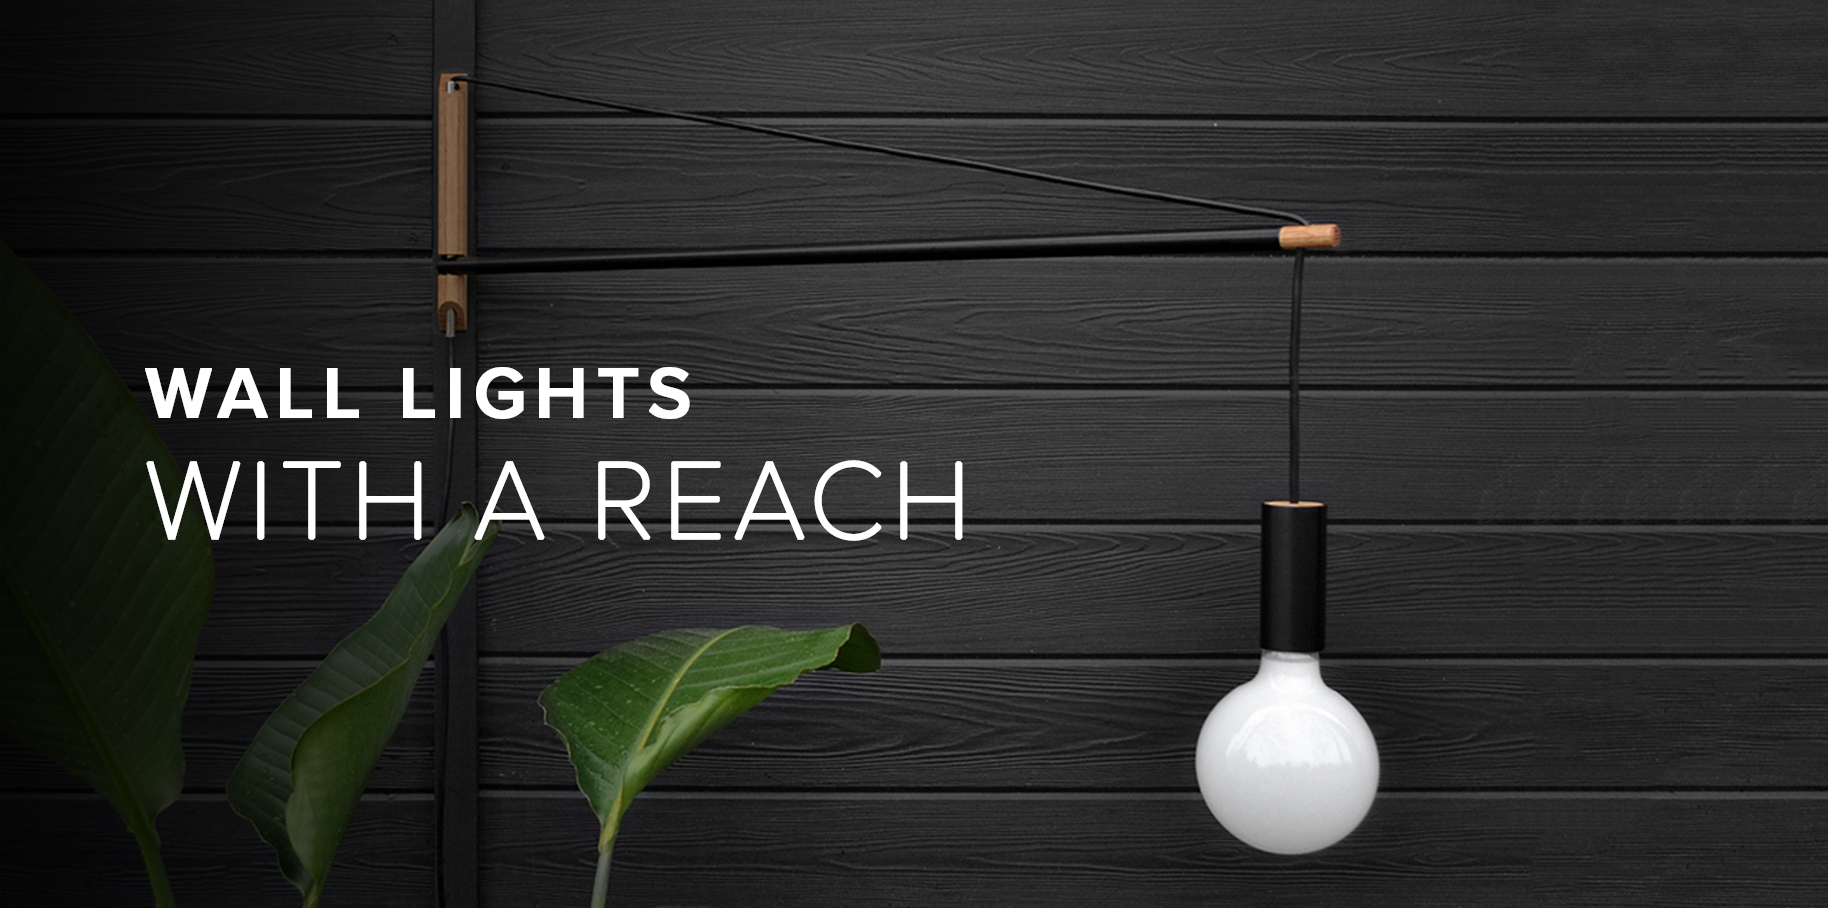 Wall Lights With A Reach